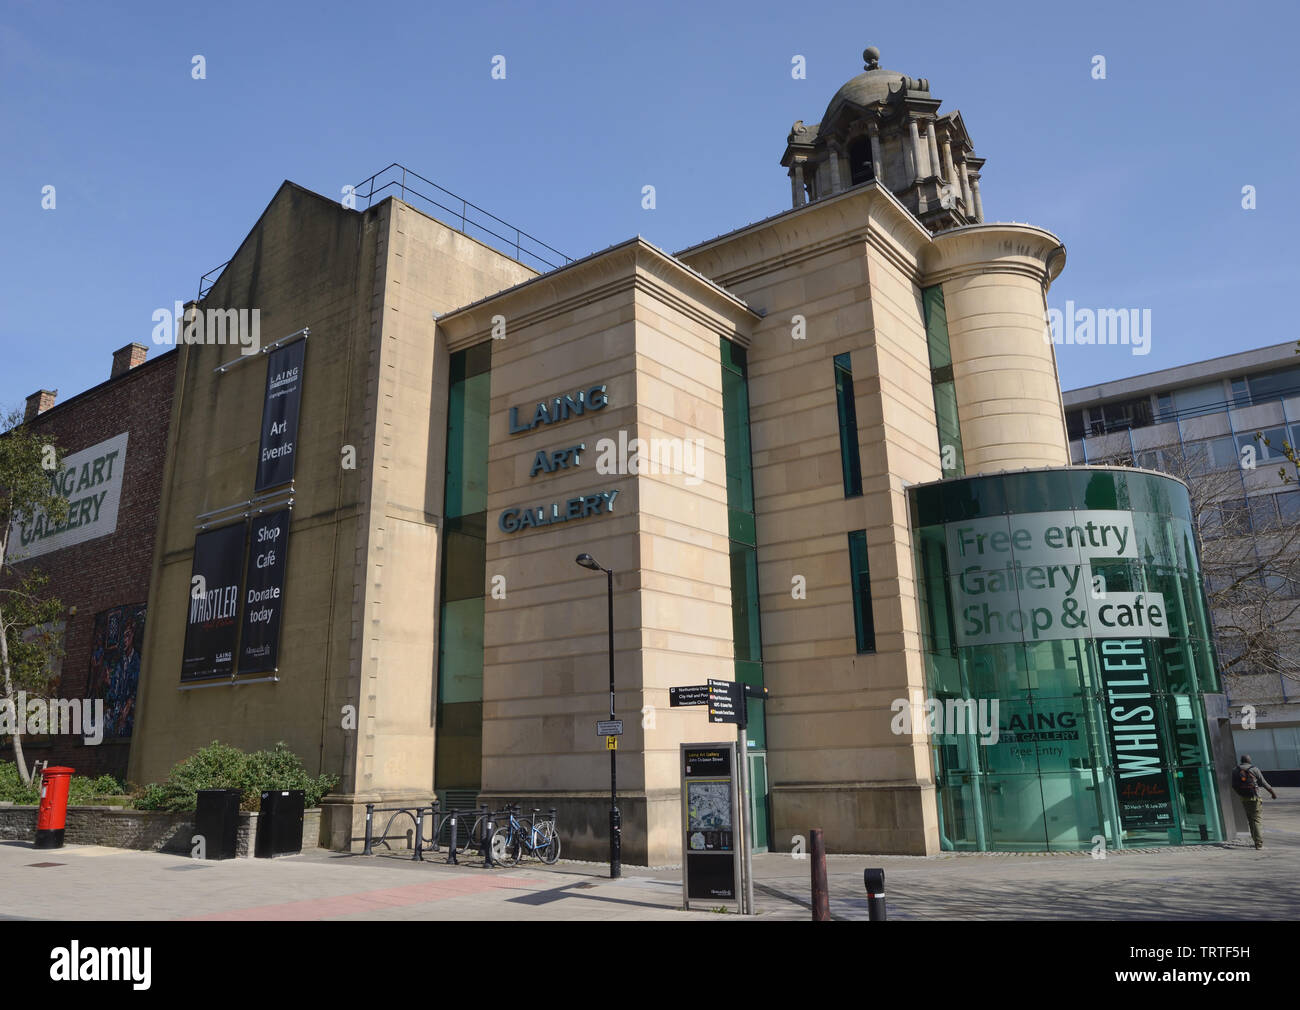 The Laing Art Gallery Newcastle upon Tyne Stock Photo